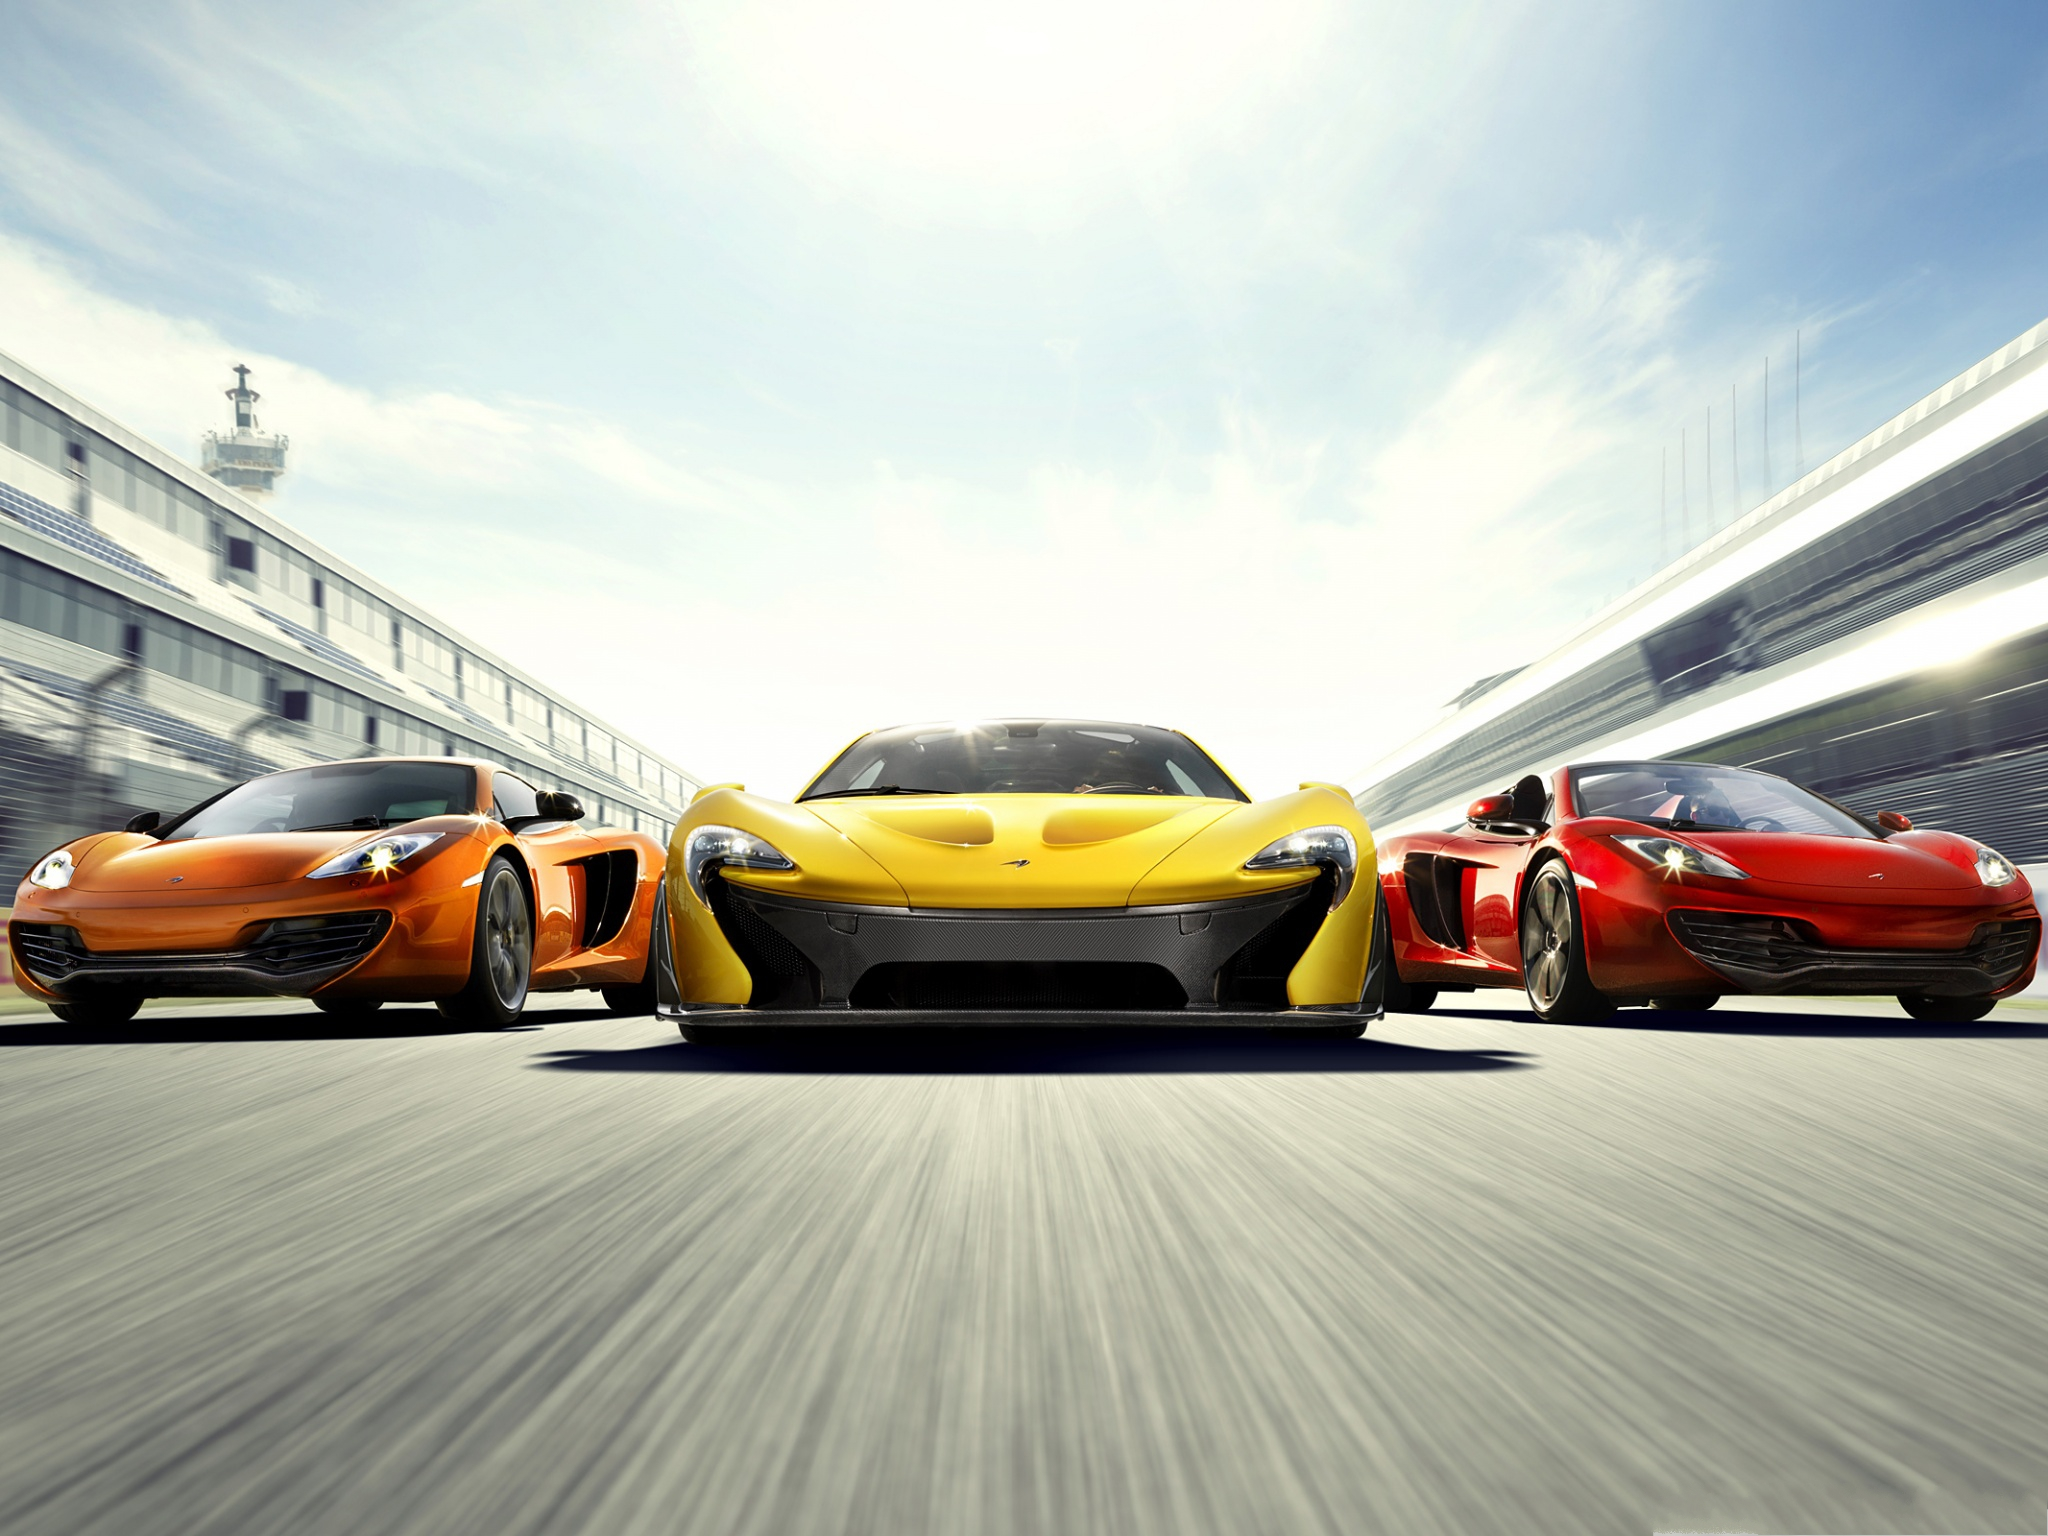 Mclaren Supercars Background Three Cars In A Line Great